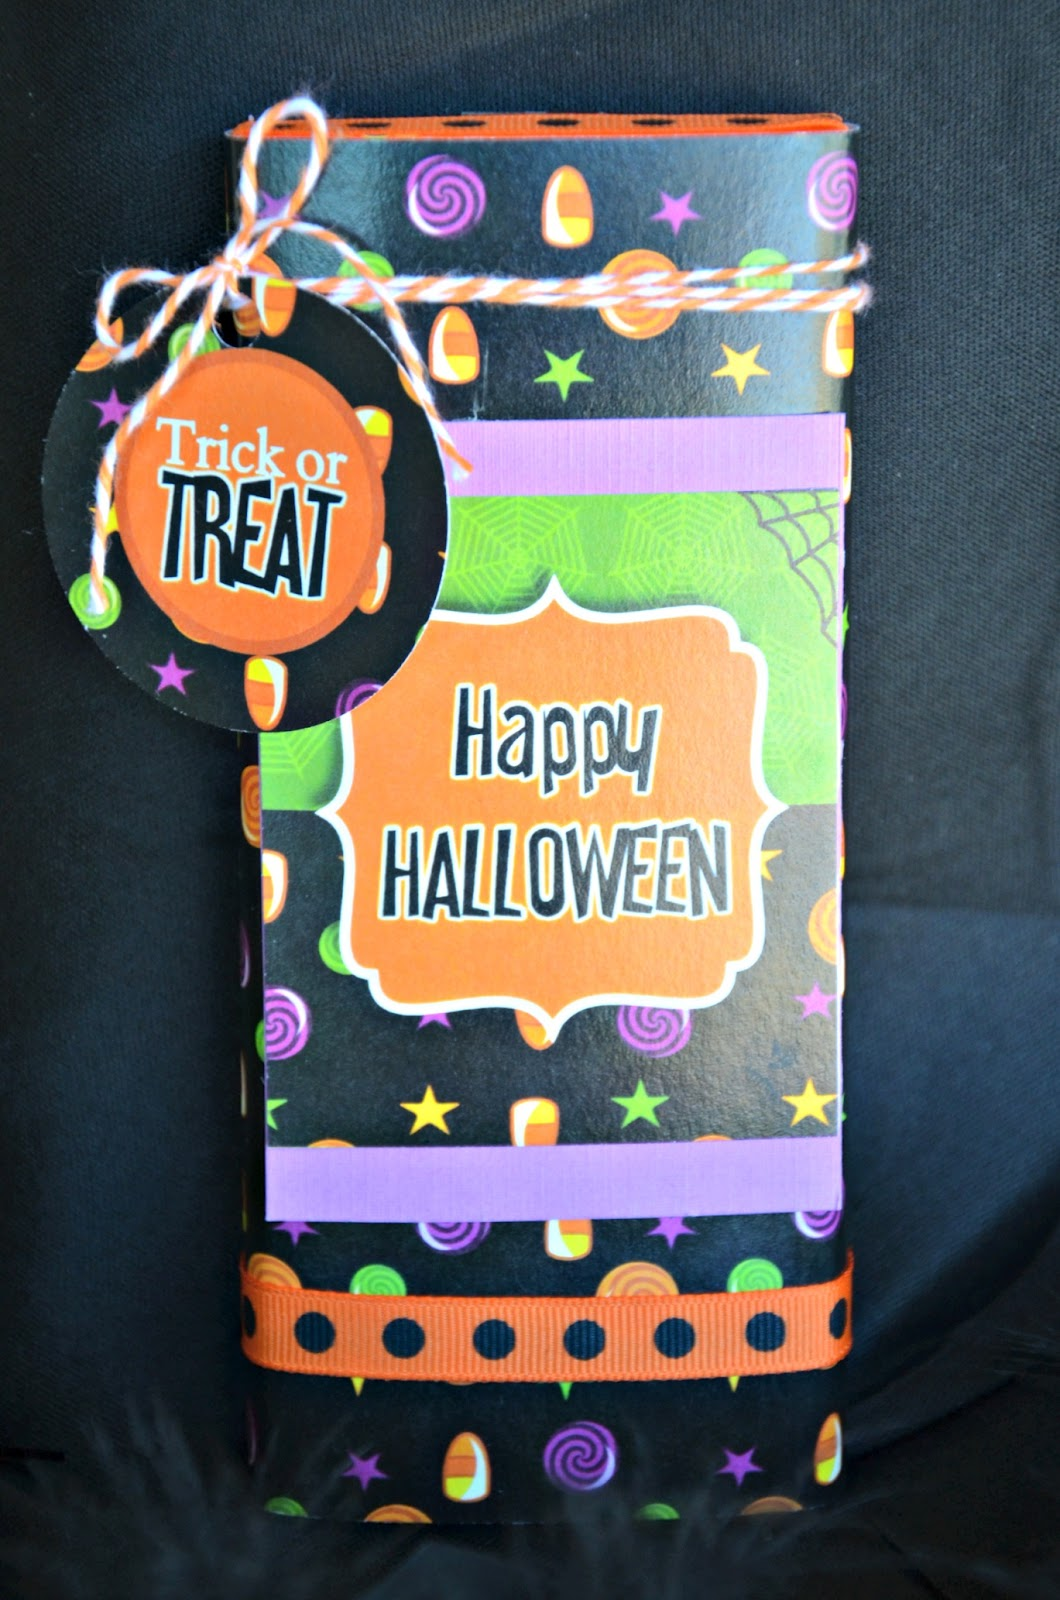 DIY Halloween Candy Bar Wrappers - via BirdsParty.com